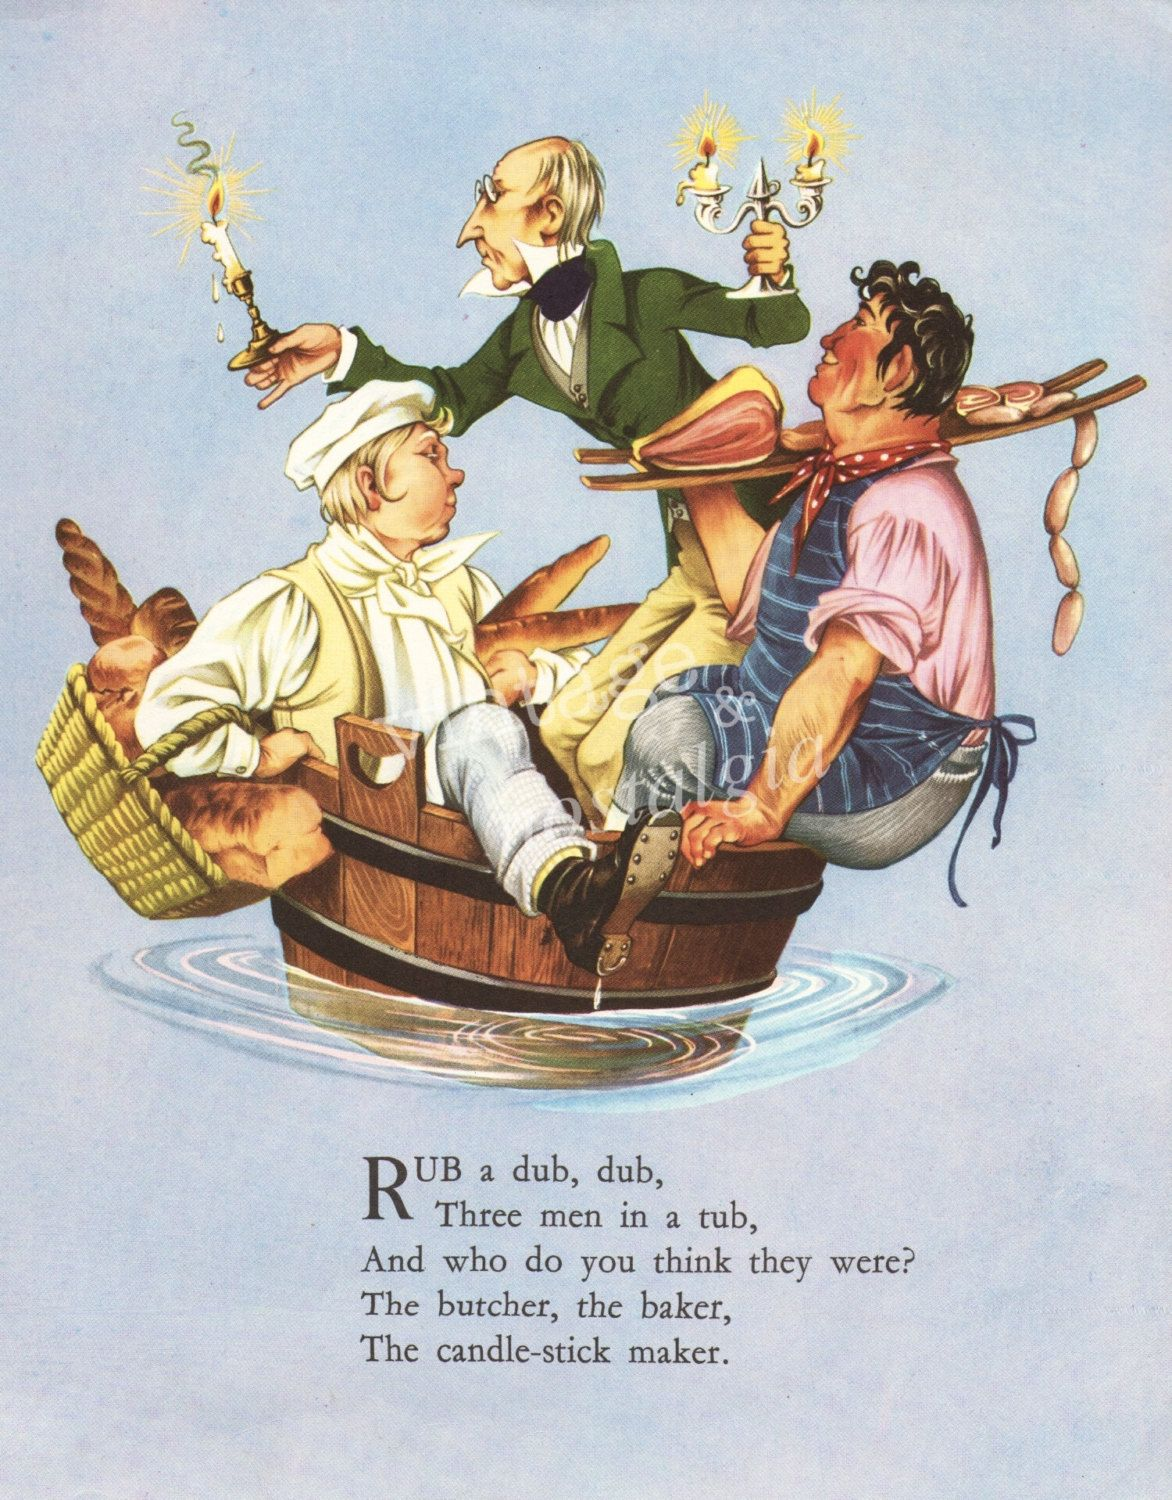 Vintage Nursery Rhyme Rub A Dub Three Men In Tub Decor Print Kids Boy Bedroom 9 95 Via Etsy